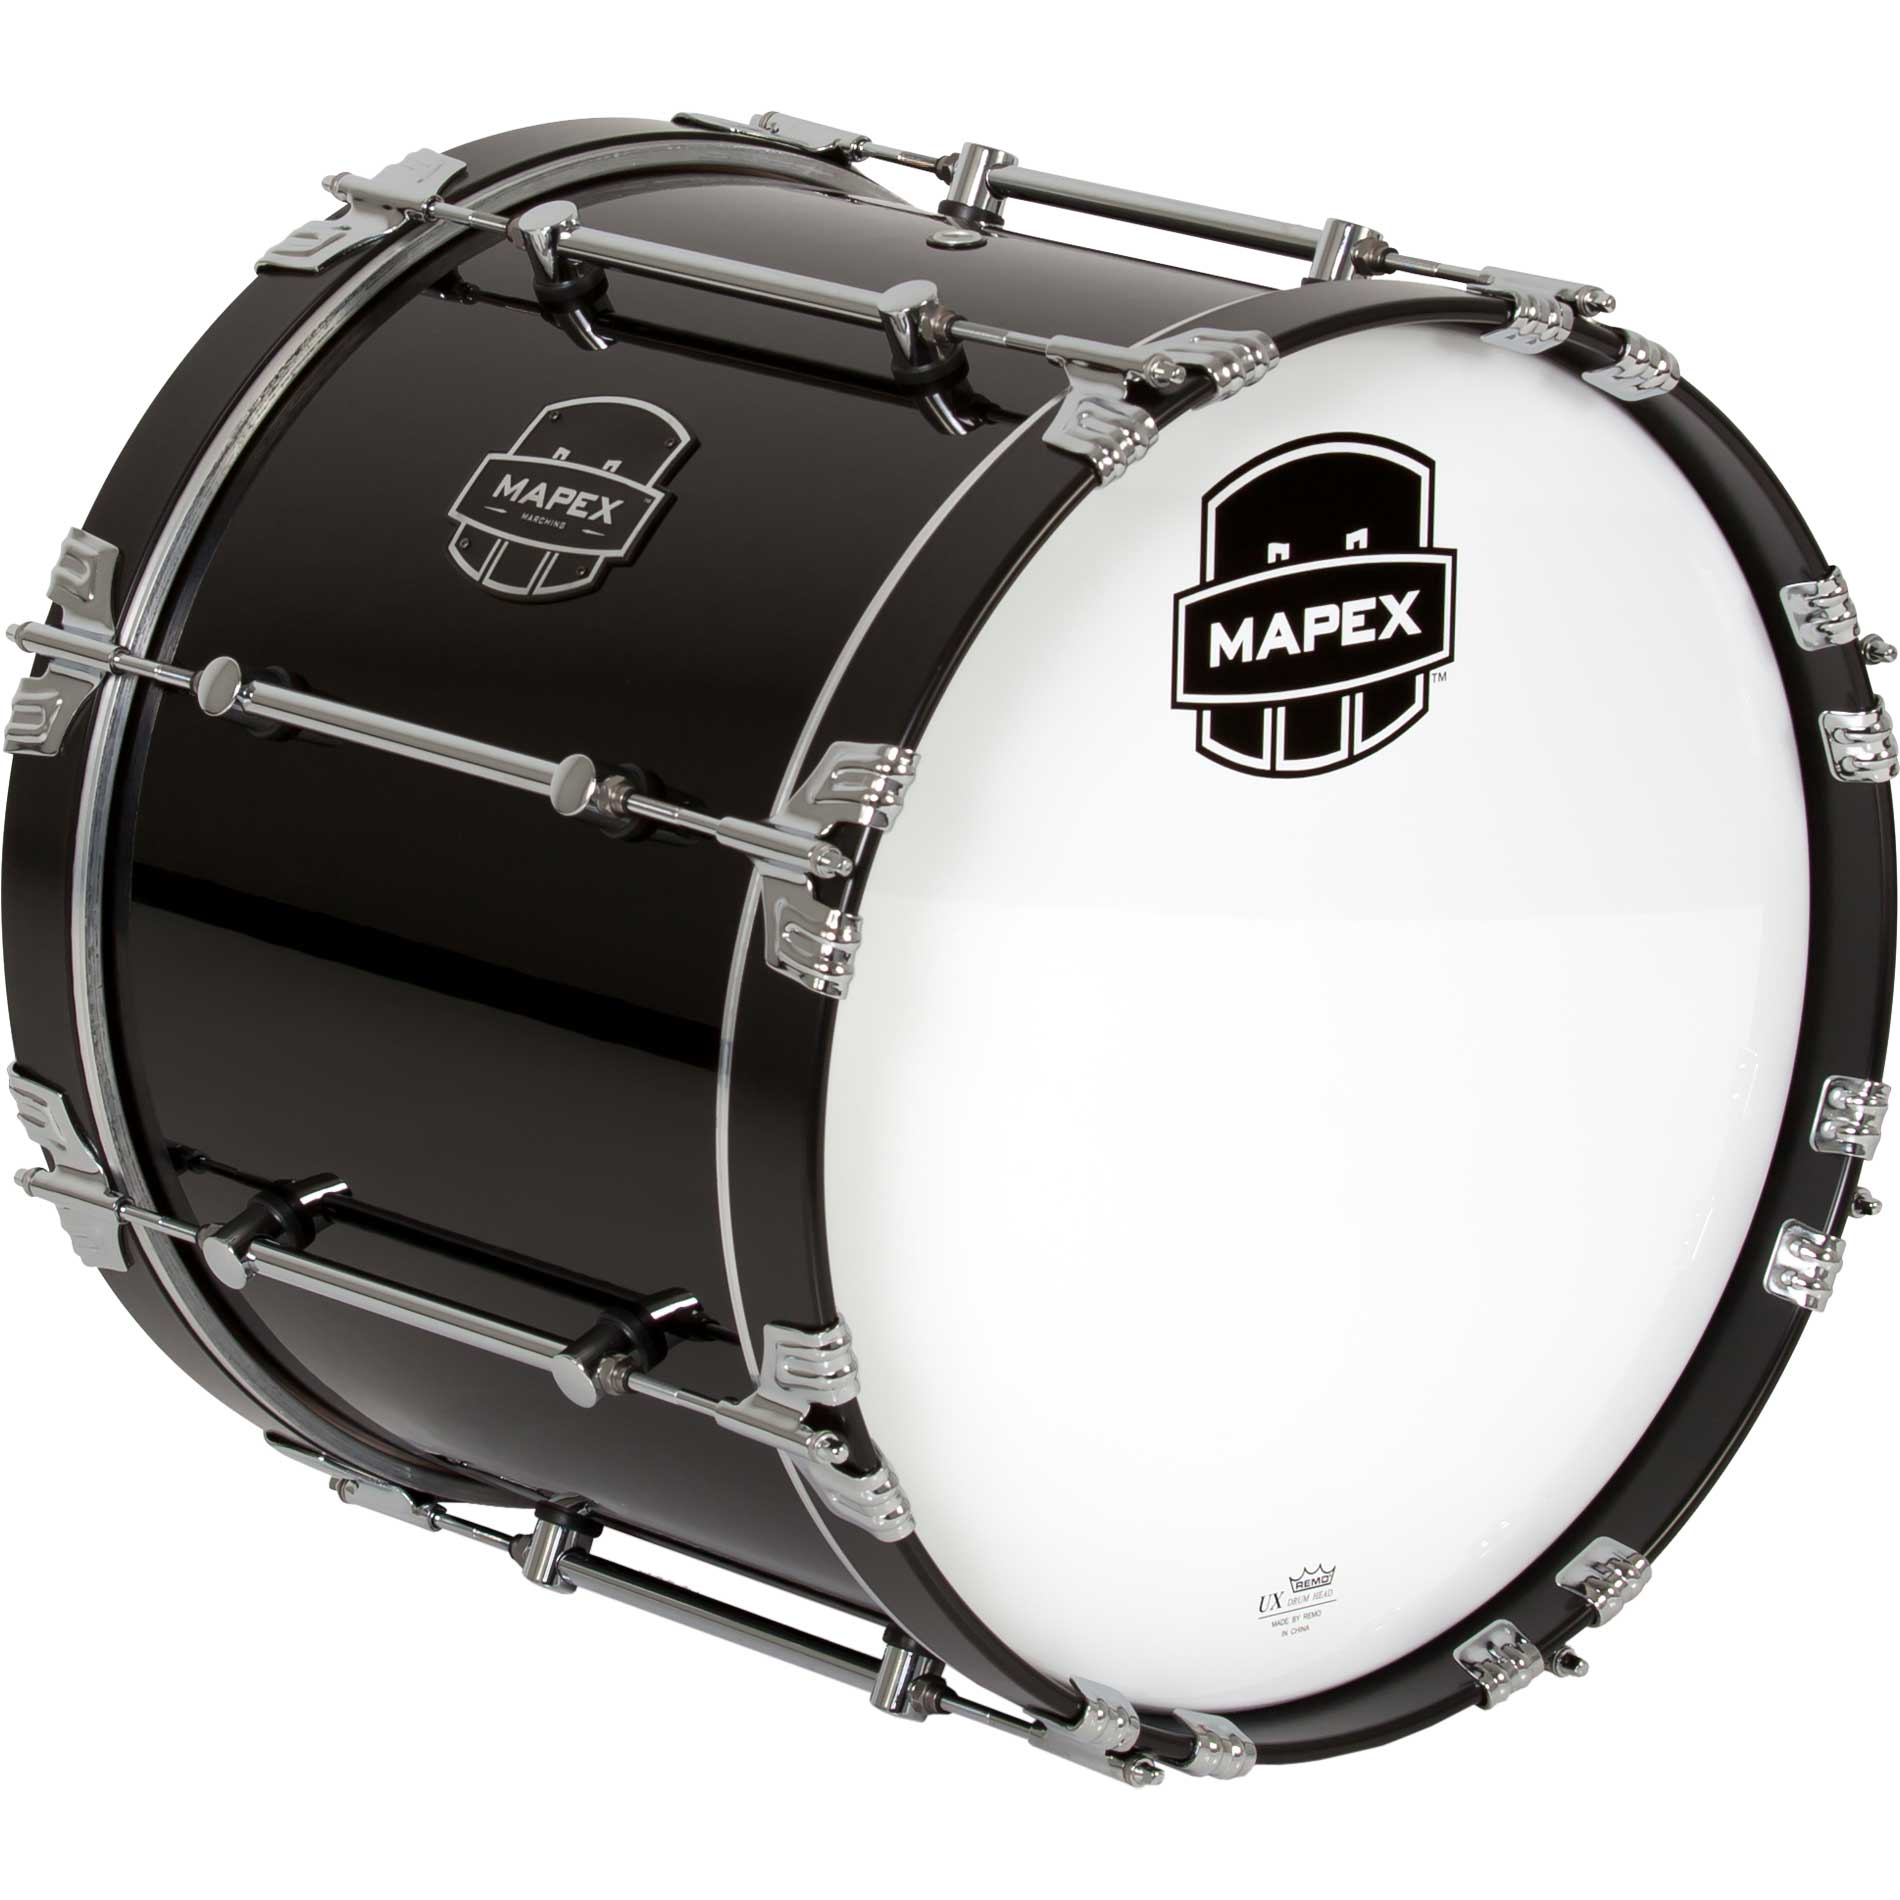 "Mapex 18"" Quantum Marching Bass Drum in Gloss Black"